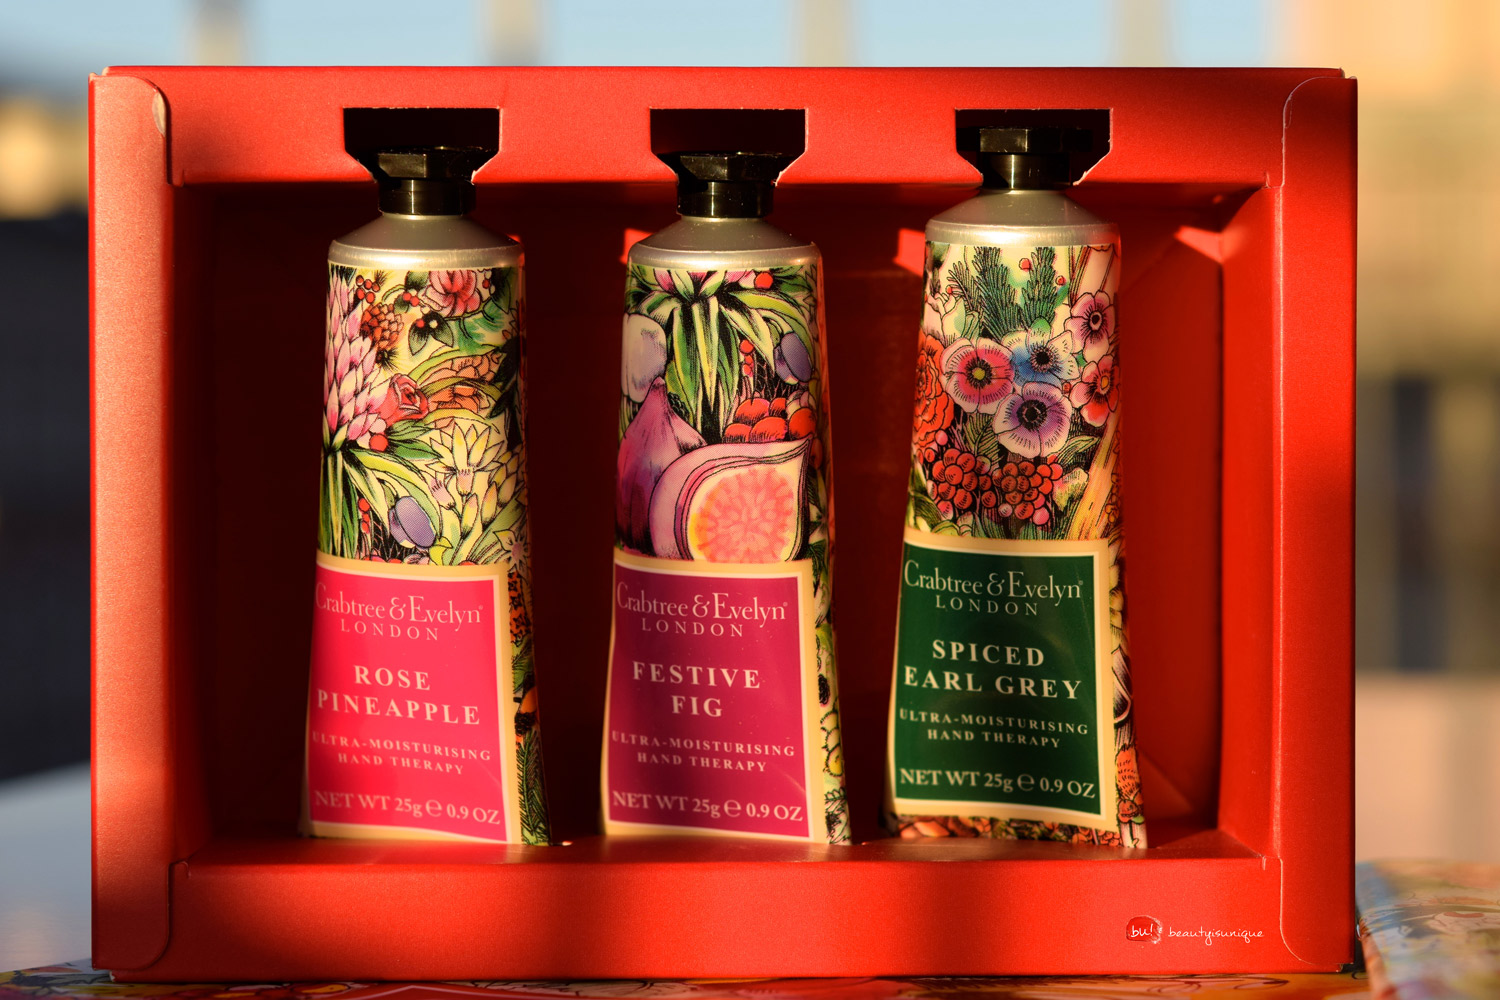 crabtree-and-evelyn-spiced-earl-gray